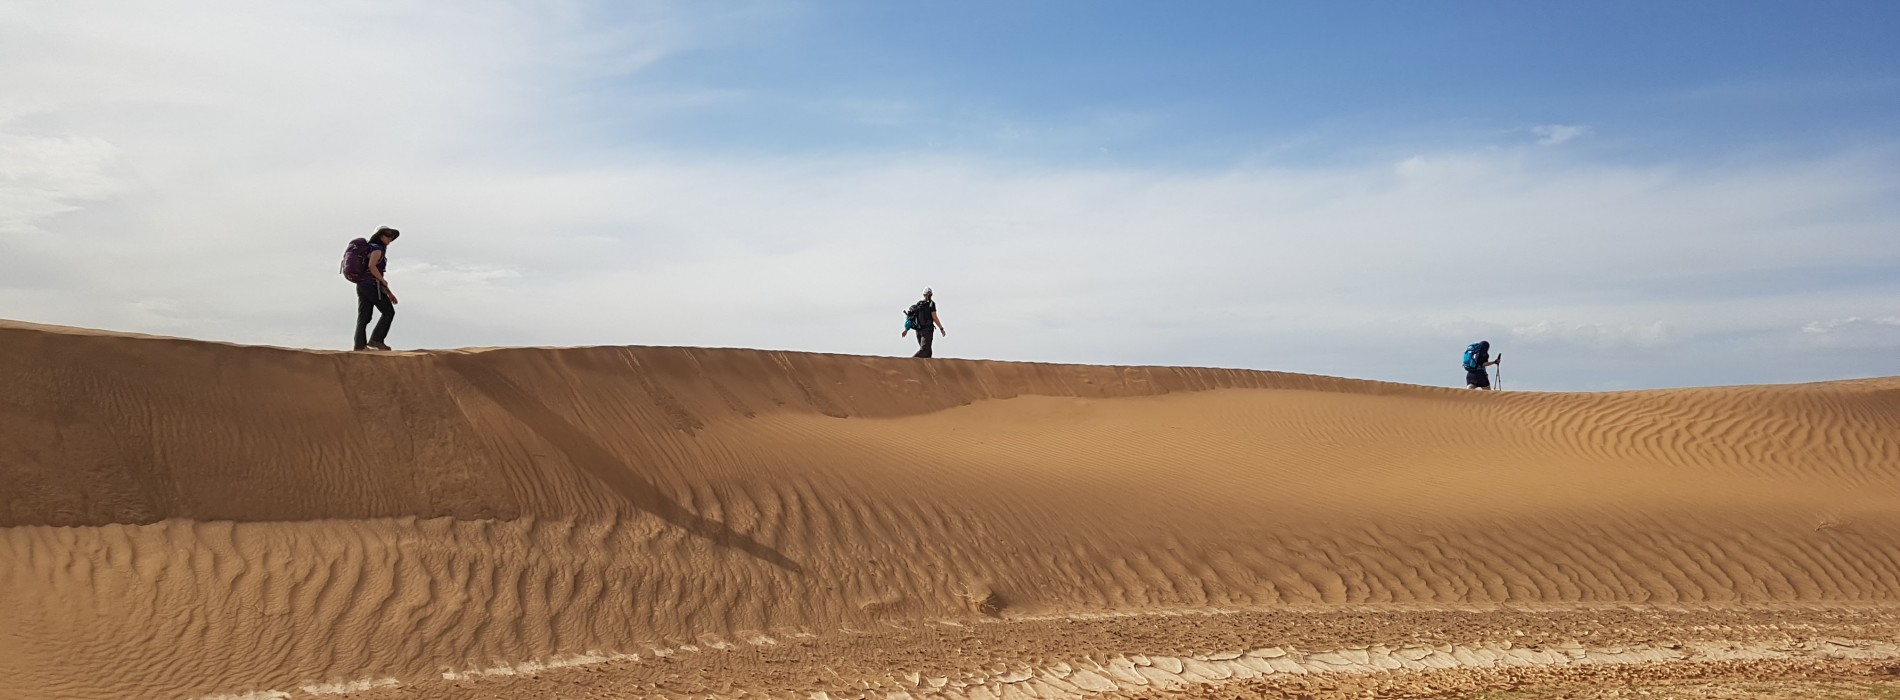 Trekking the dunes in the Sahara